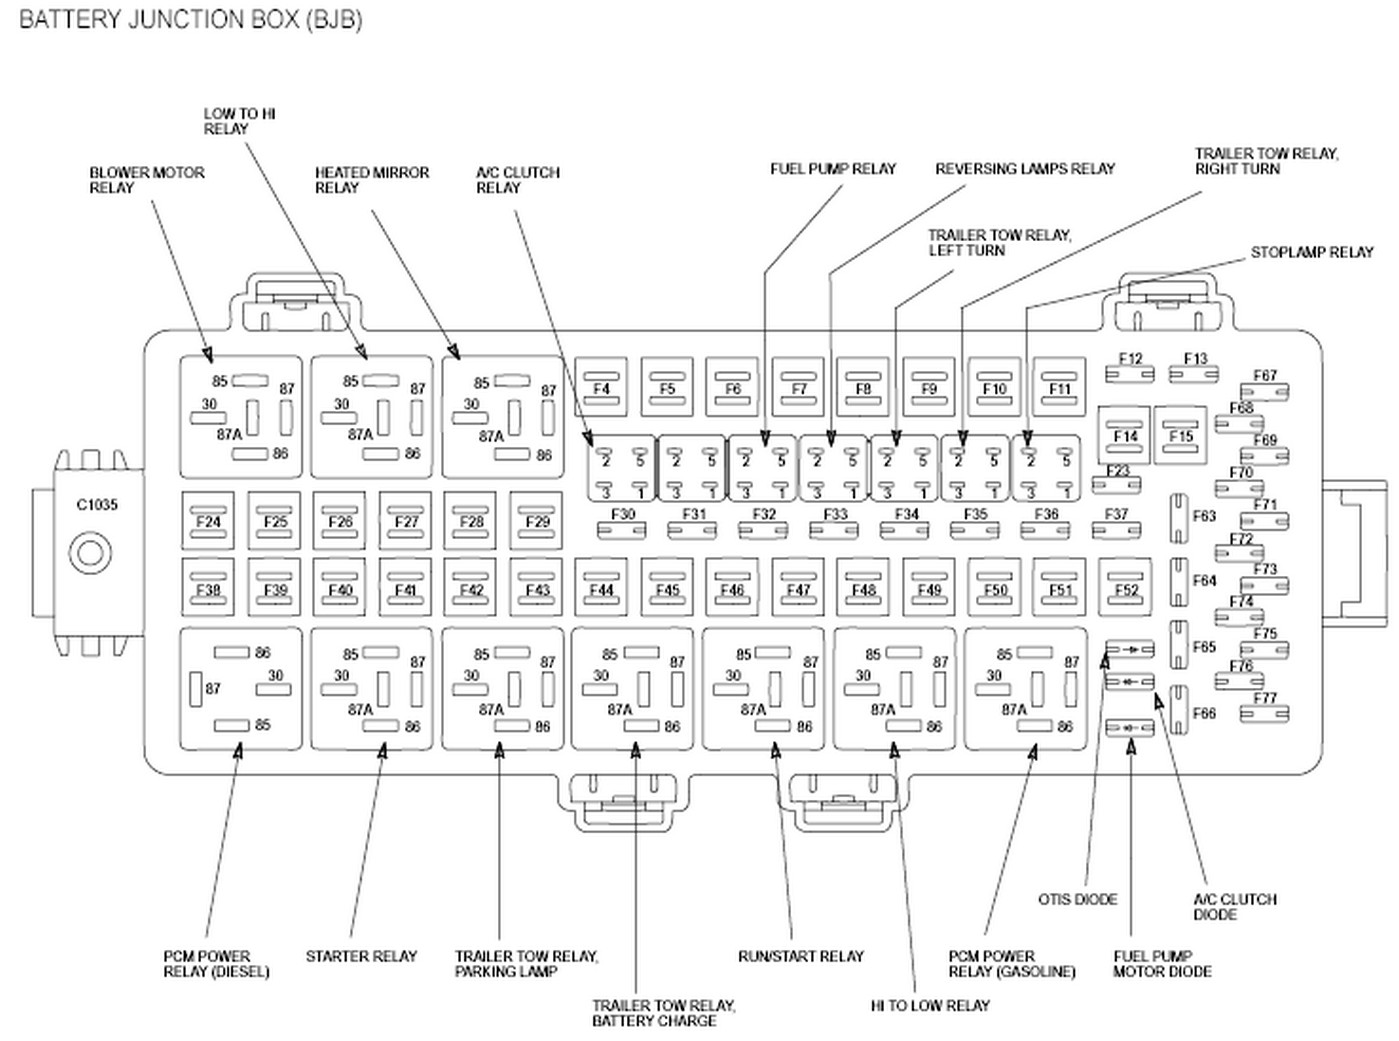 2011 ford f250 fuse box diagram Zoinyhu 2013 f250 fuse box diagram 1986 f250 fuse box diagram \u2022 wiring 2003 ford e450 fuse diagram at couponss.co